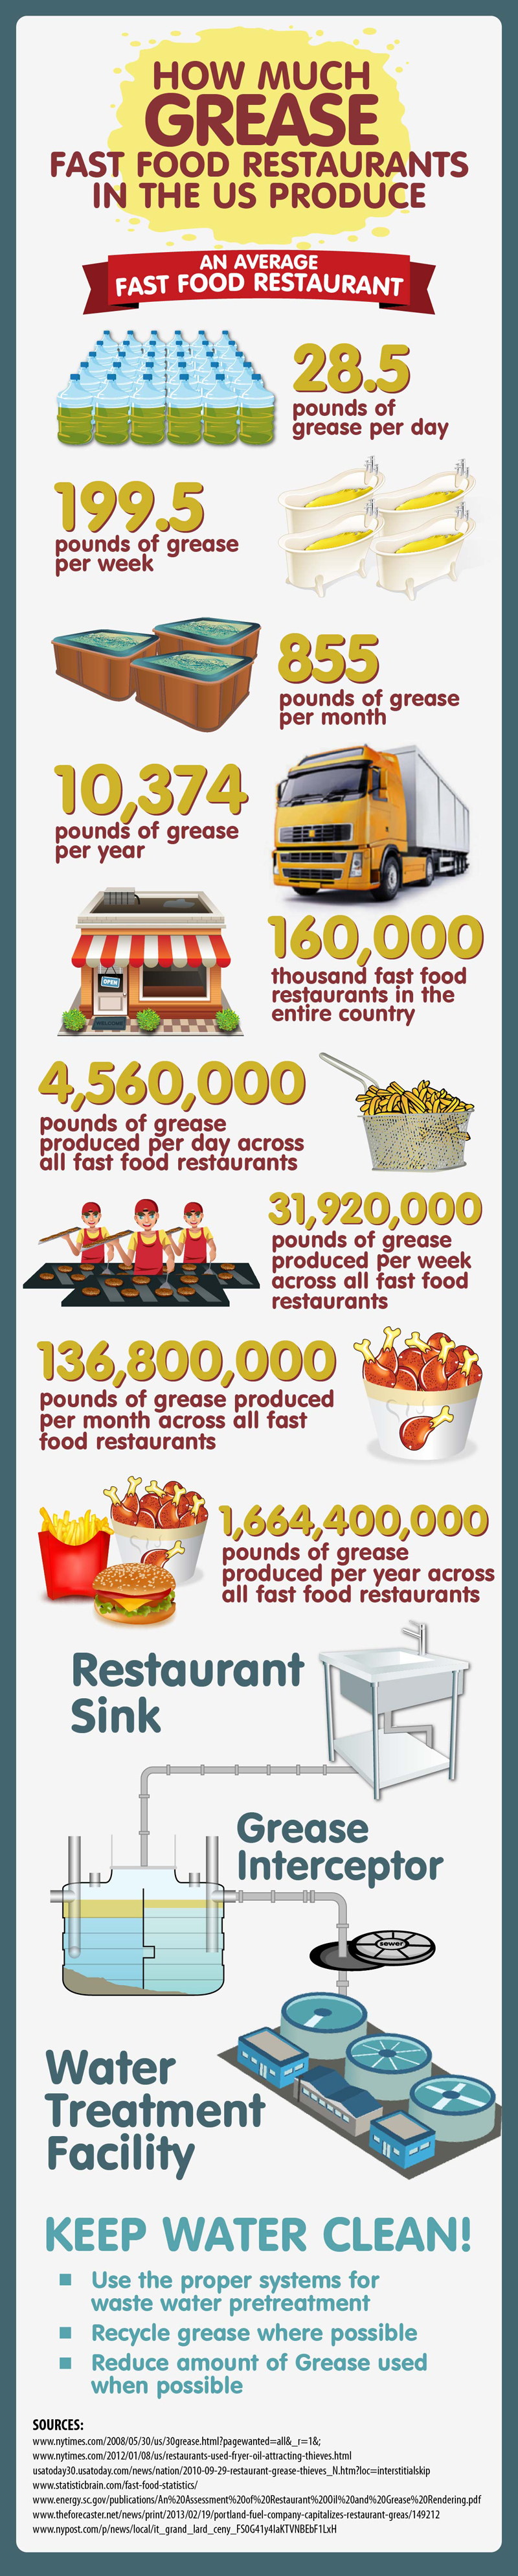 How Much Grease Fast Food Restaurants Produce